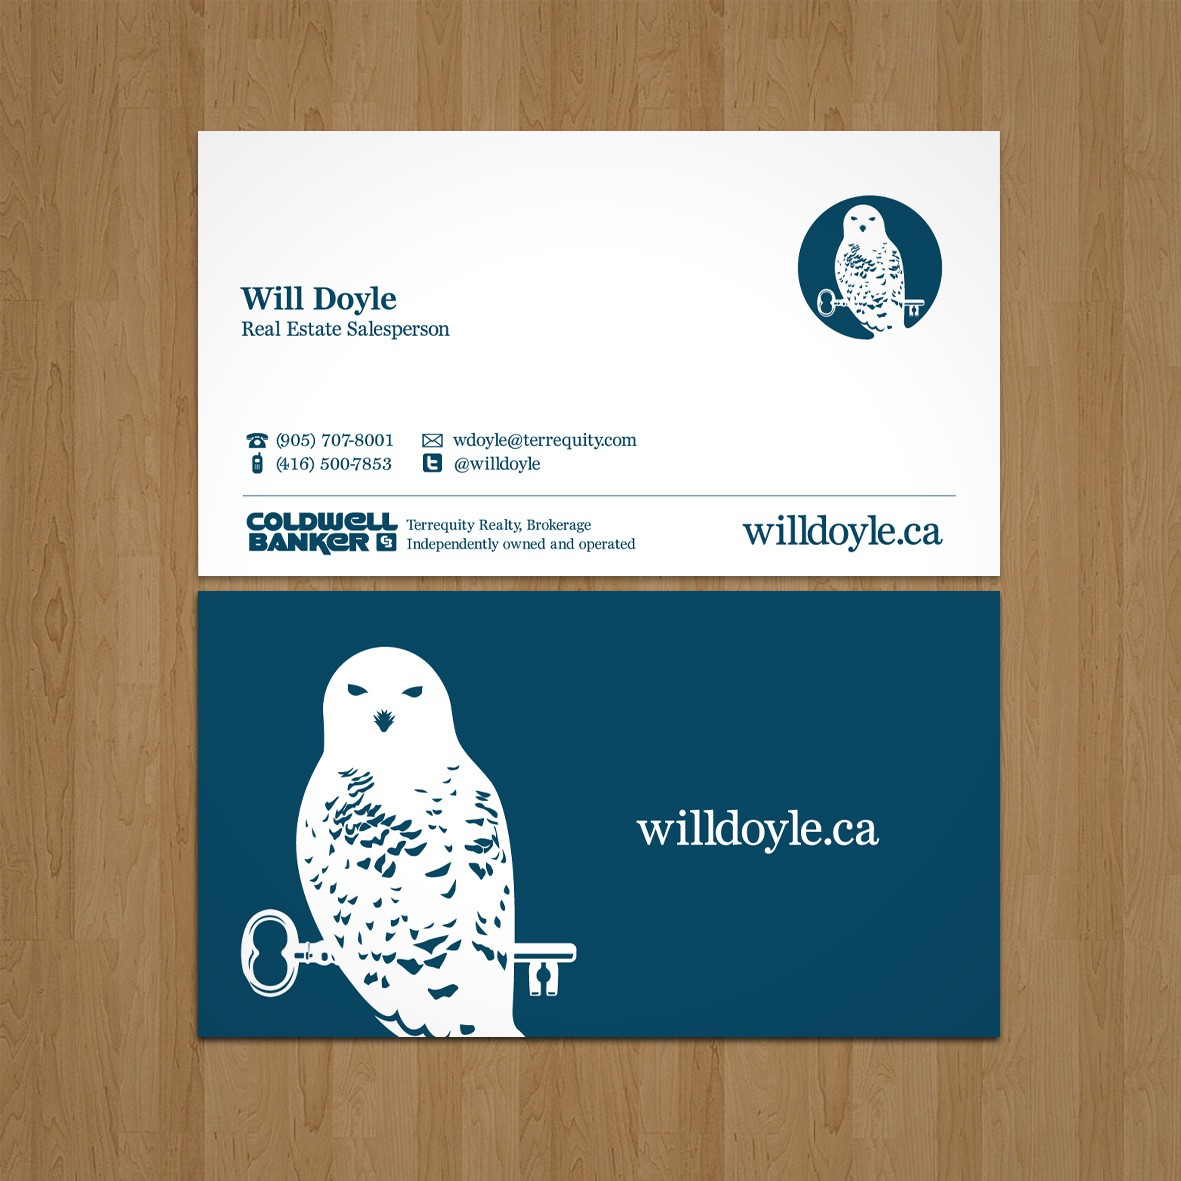 Create an awesome business card for Will Doyle